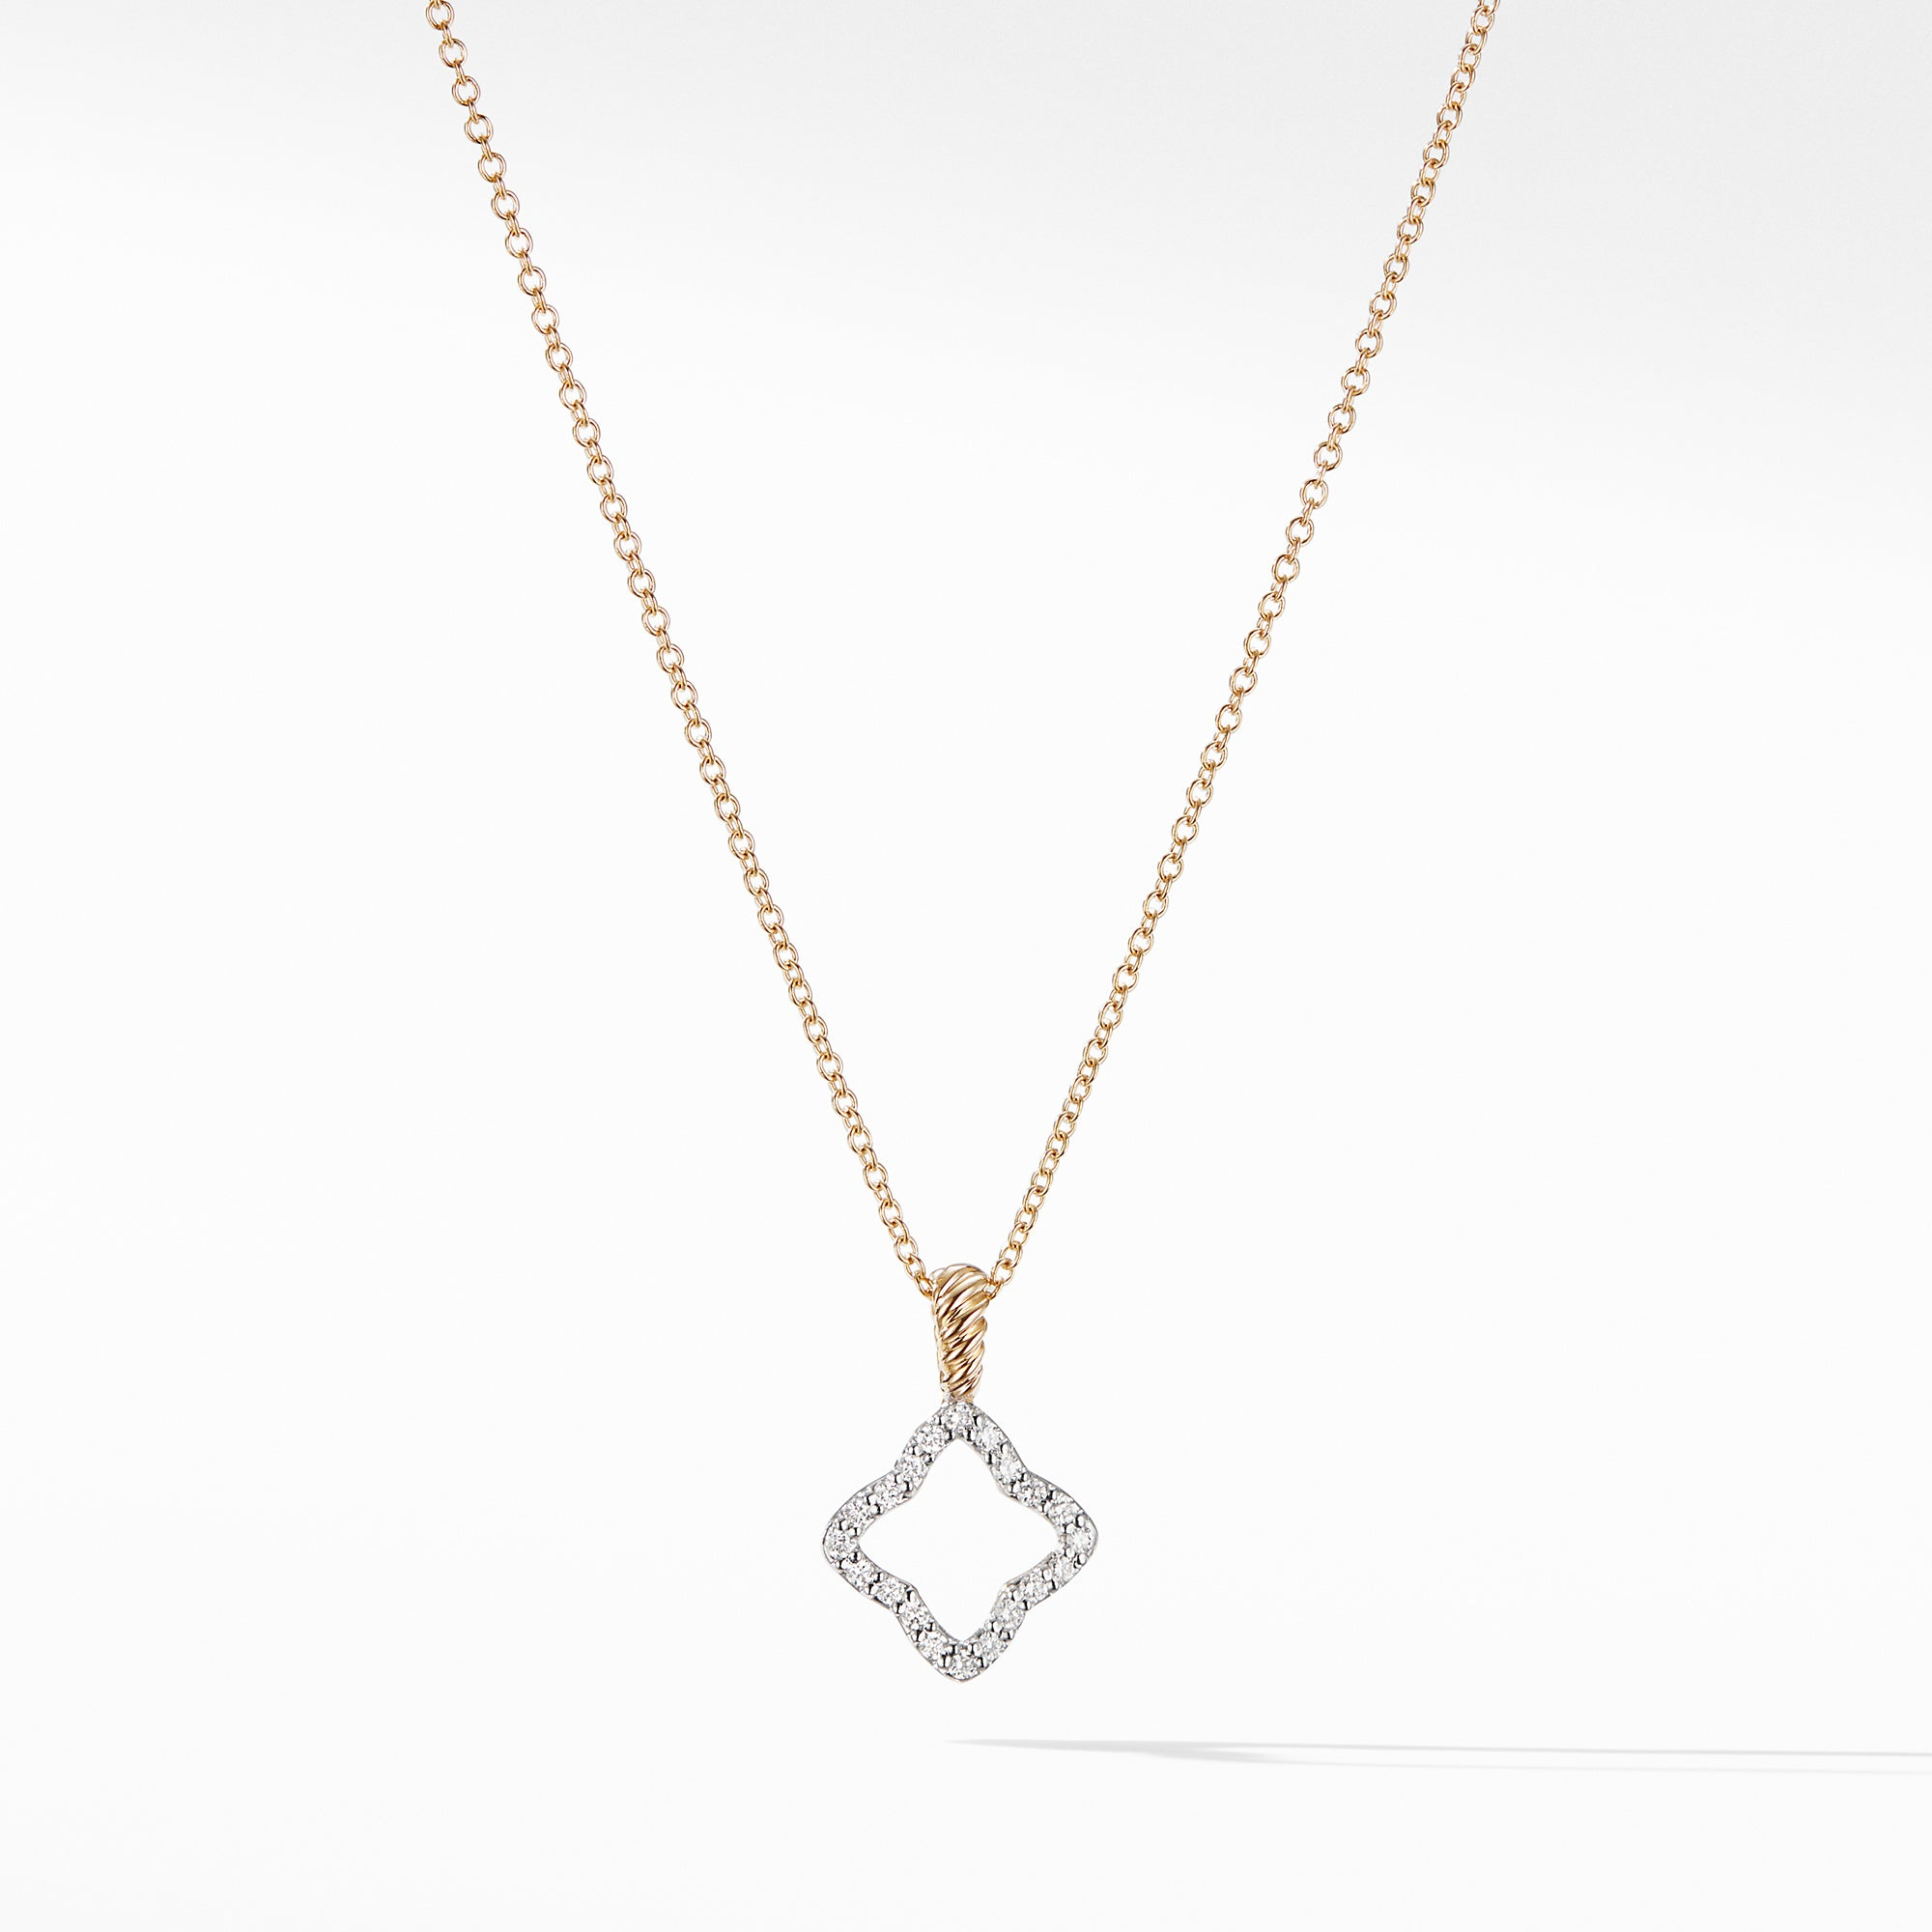 Cable Collectibles Quatrefoil® Pendant with Diamonds in Gold on Chain